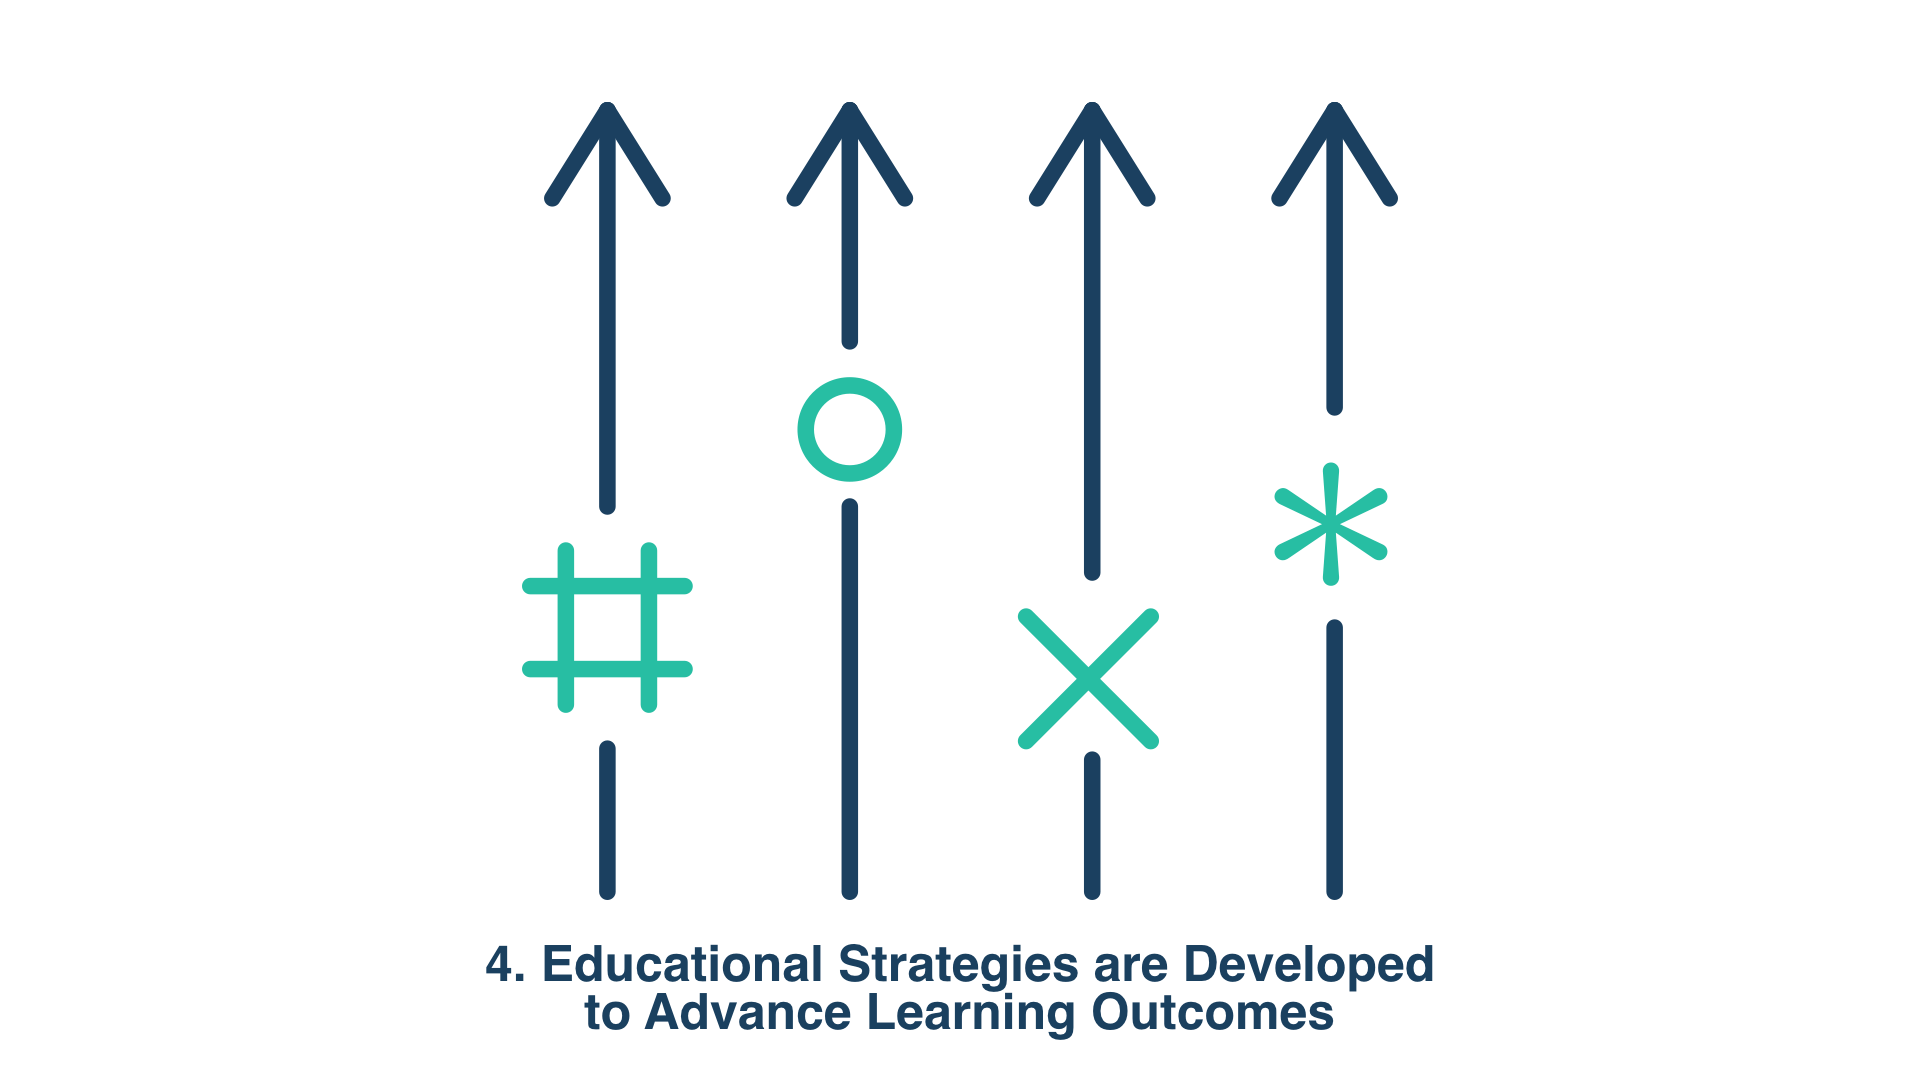 4. Educational Strategies are Developed to Advance Learning Outcomes